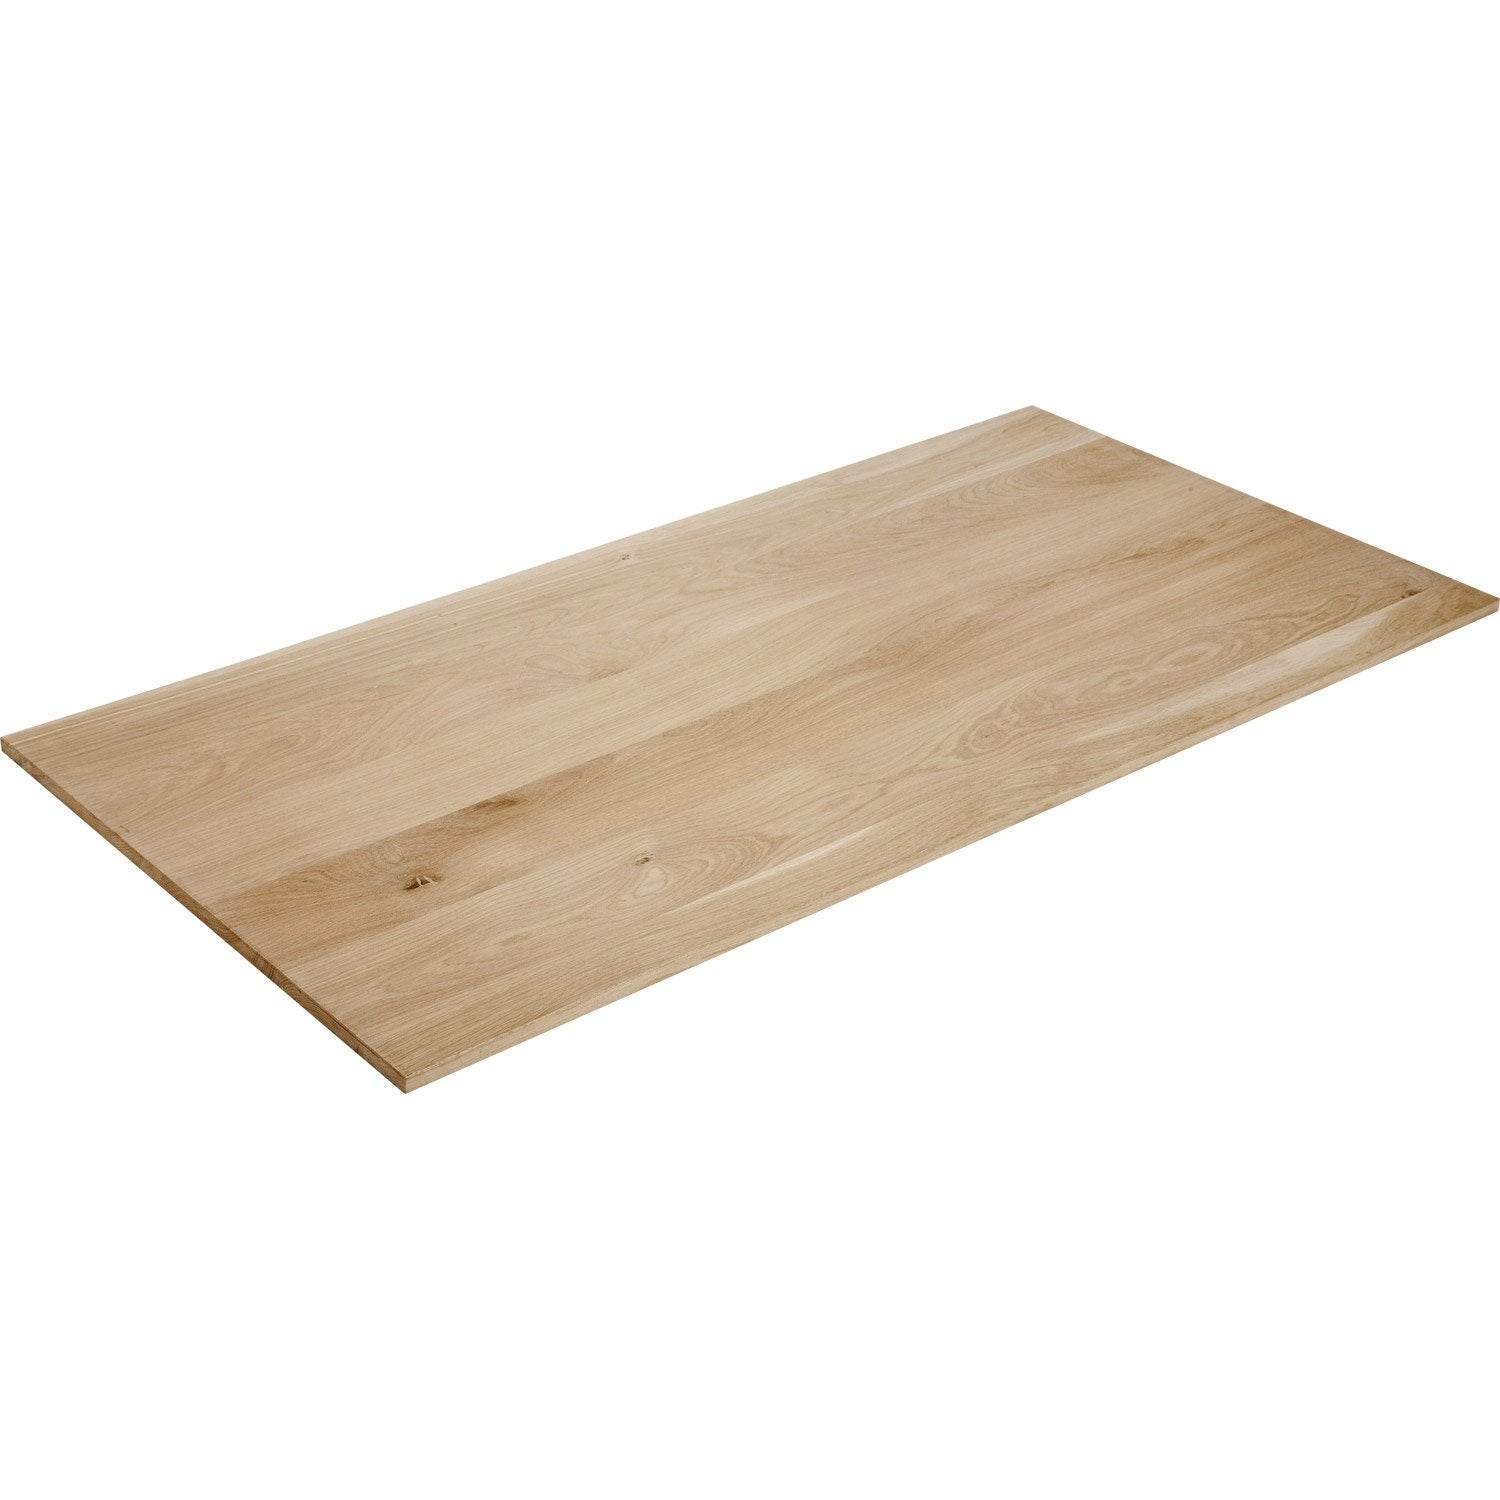 Plateau de table ch ne pleine lame x cm x ep - Leroy merlin tablette chene ...